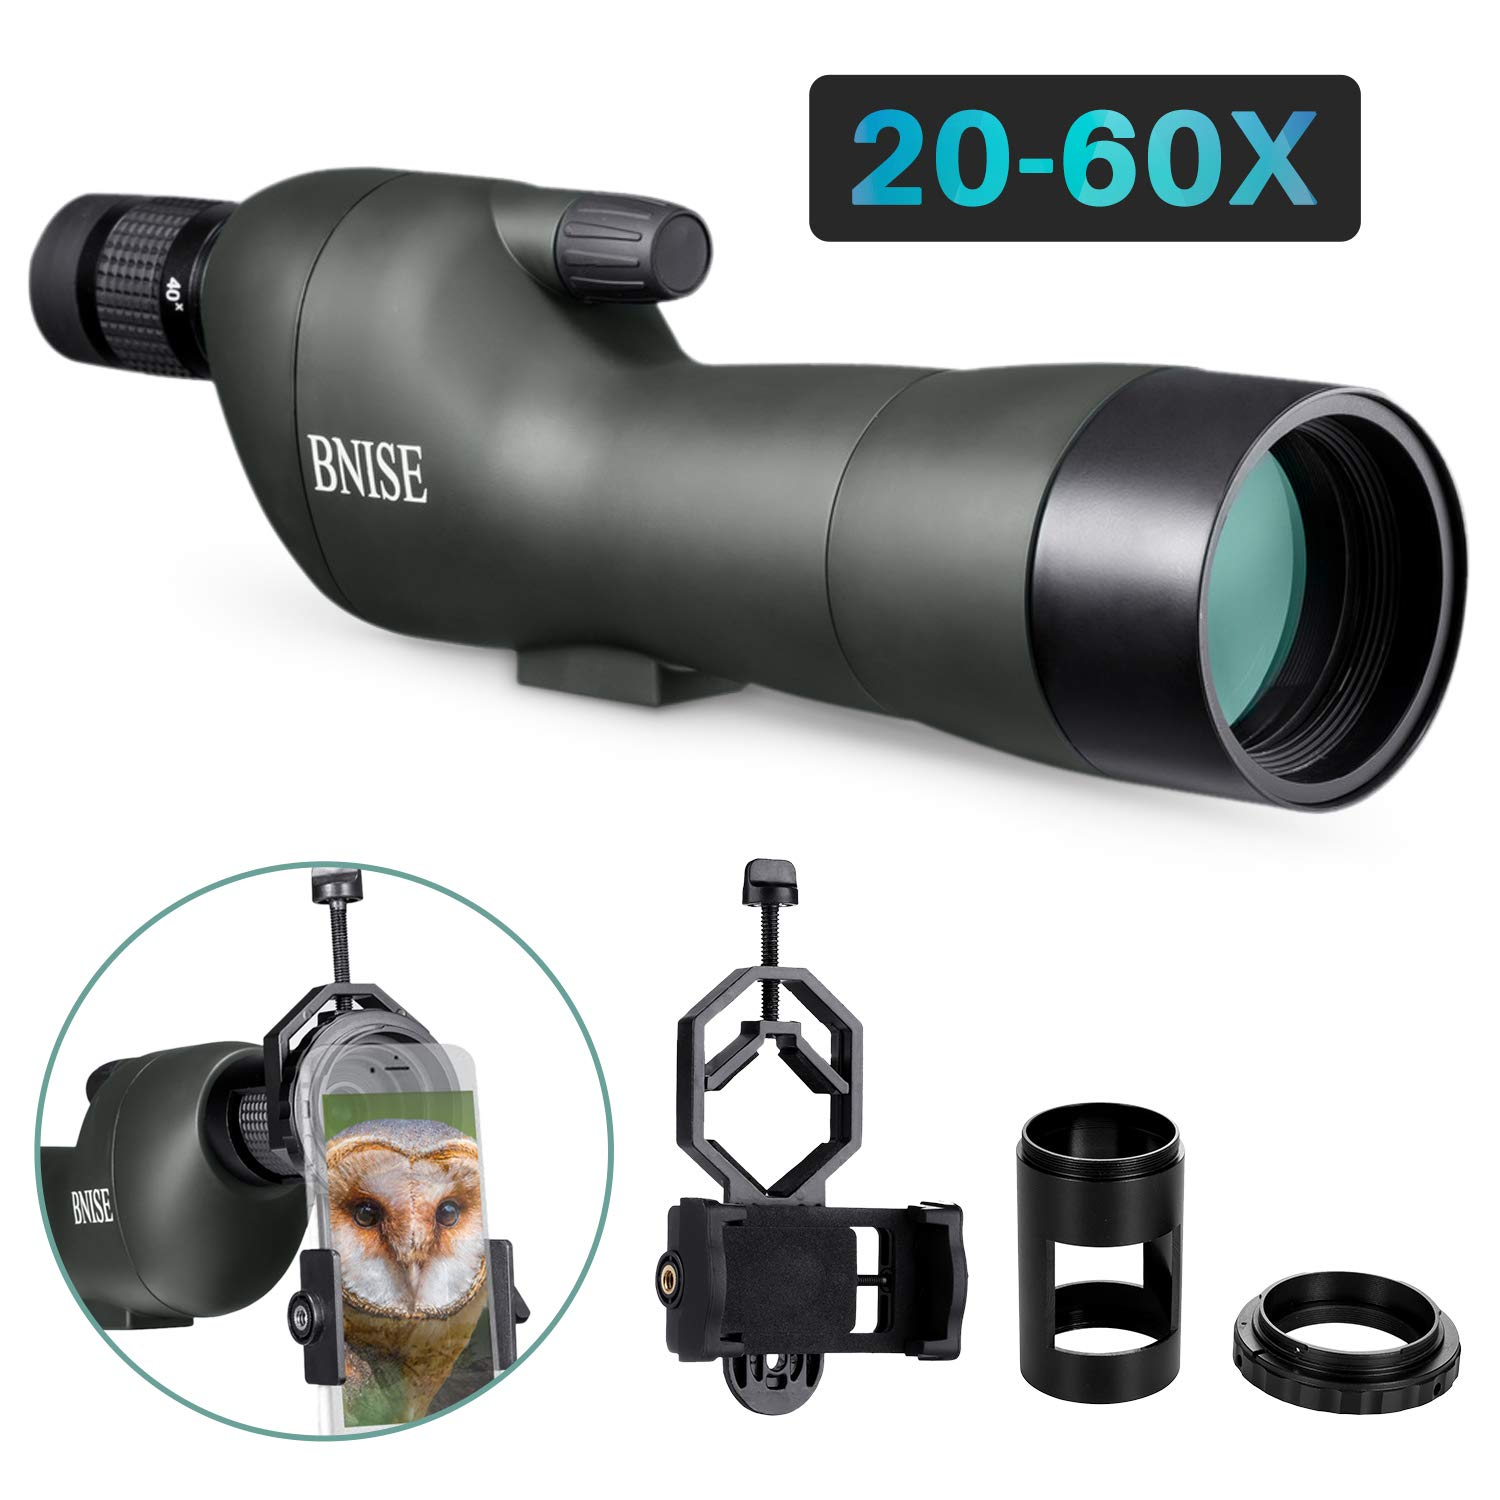 BNISE Spotting Scope – GOMU FMC Optics – 20-60×60 Zoom Monocular Waterproof Telescope – with Tripod for Hunting, Camera and Phone Photography Adapter